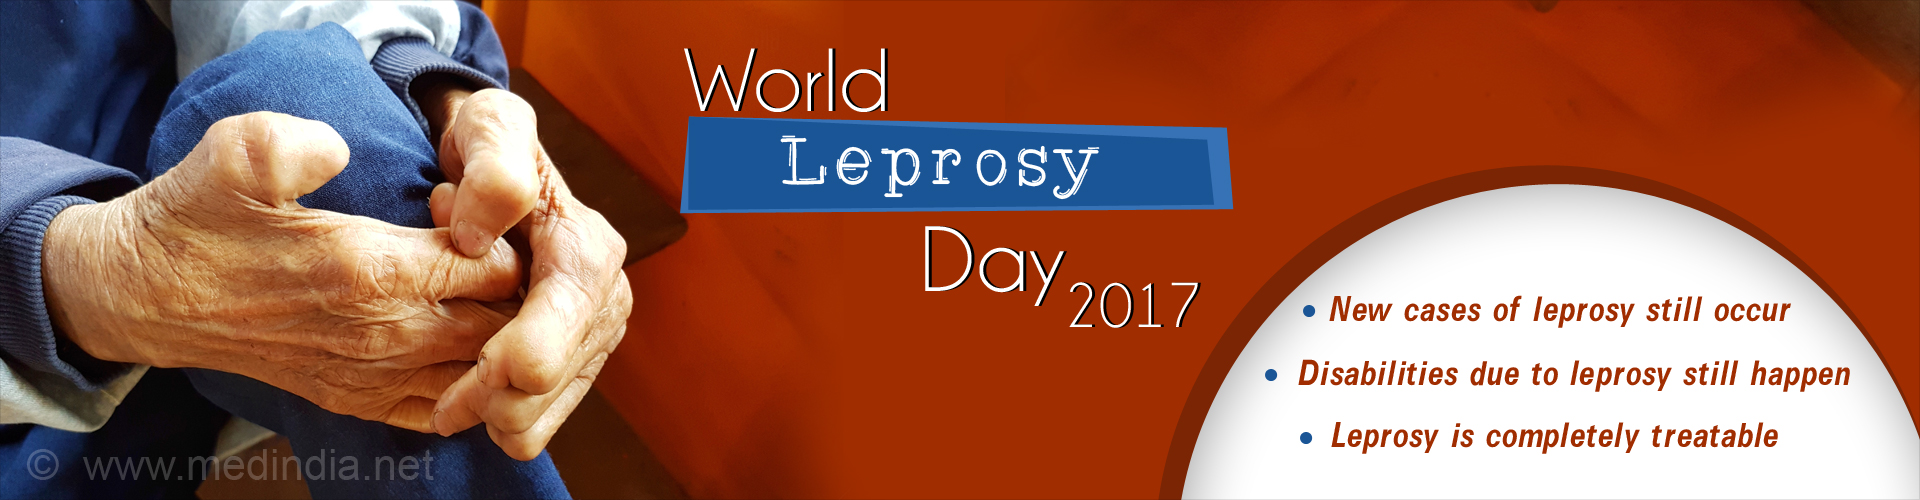 The World Leprosy Day 2017